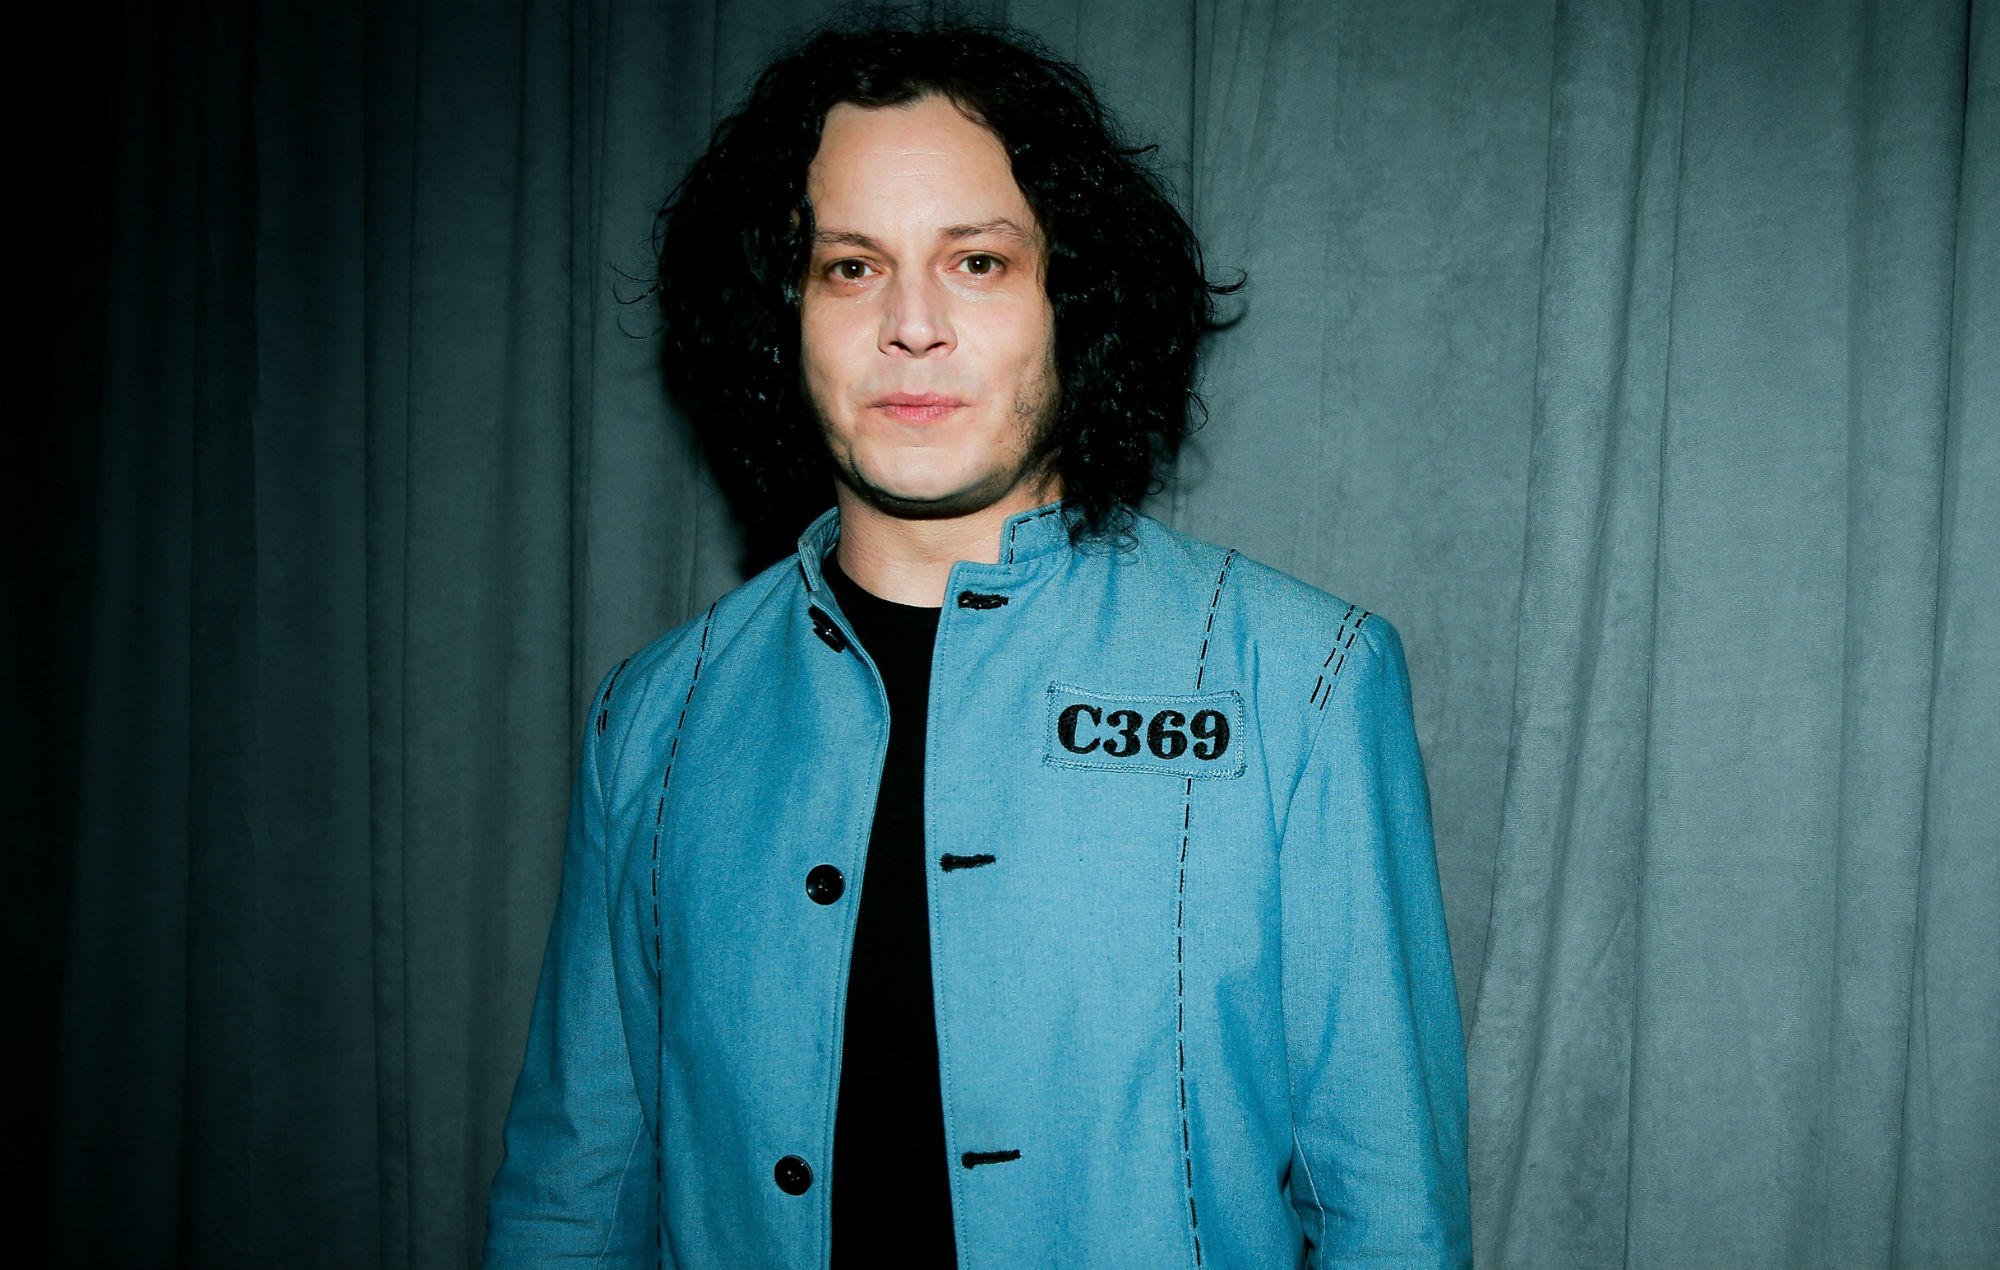 Jack White joins forces with Cards Against Humanity https://t.co/MQE2aHxVbG https://t.co/ih76iYBoEk